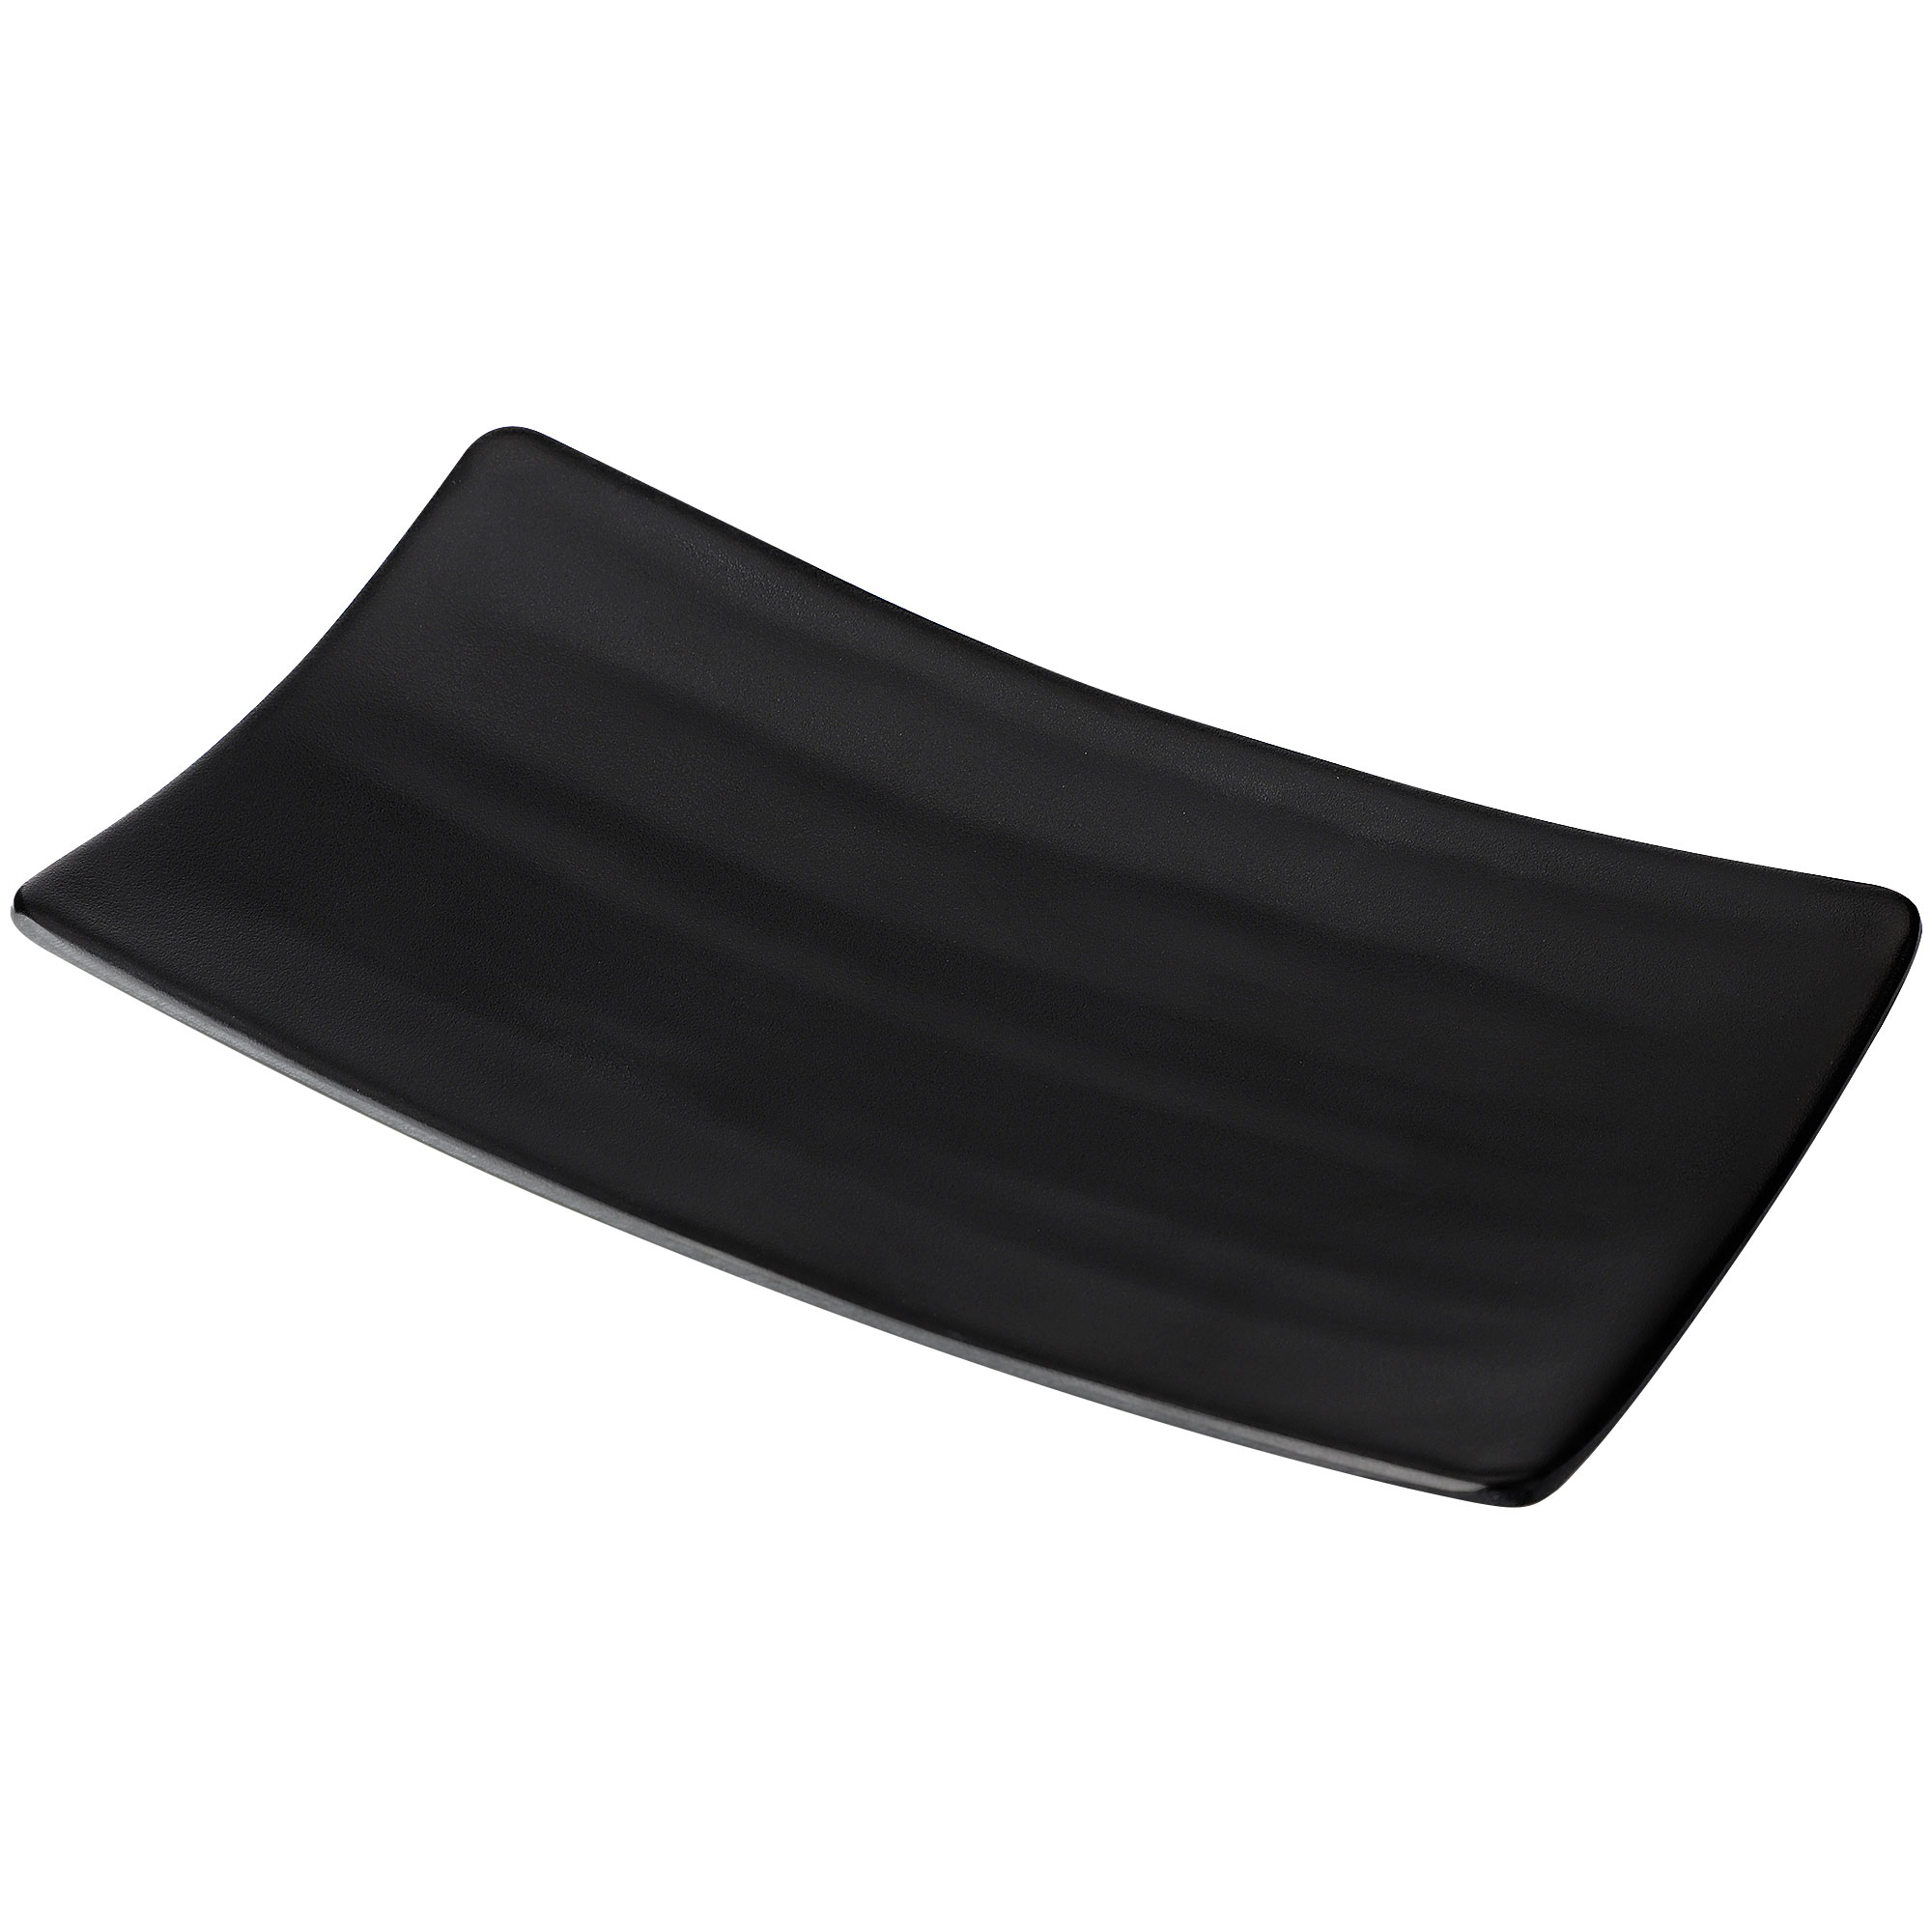 Dinnerware Rectangle Shaped Sushi Serving Dish Plate Black